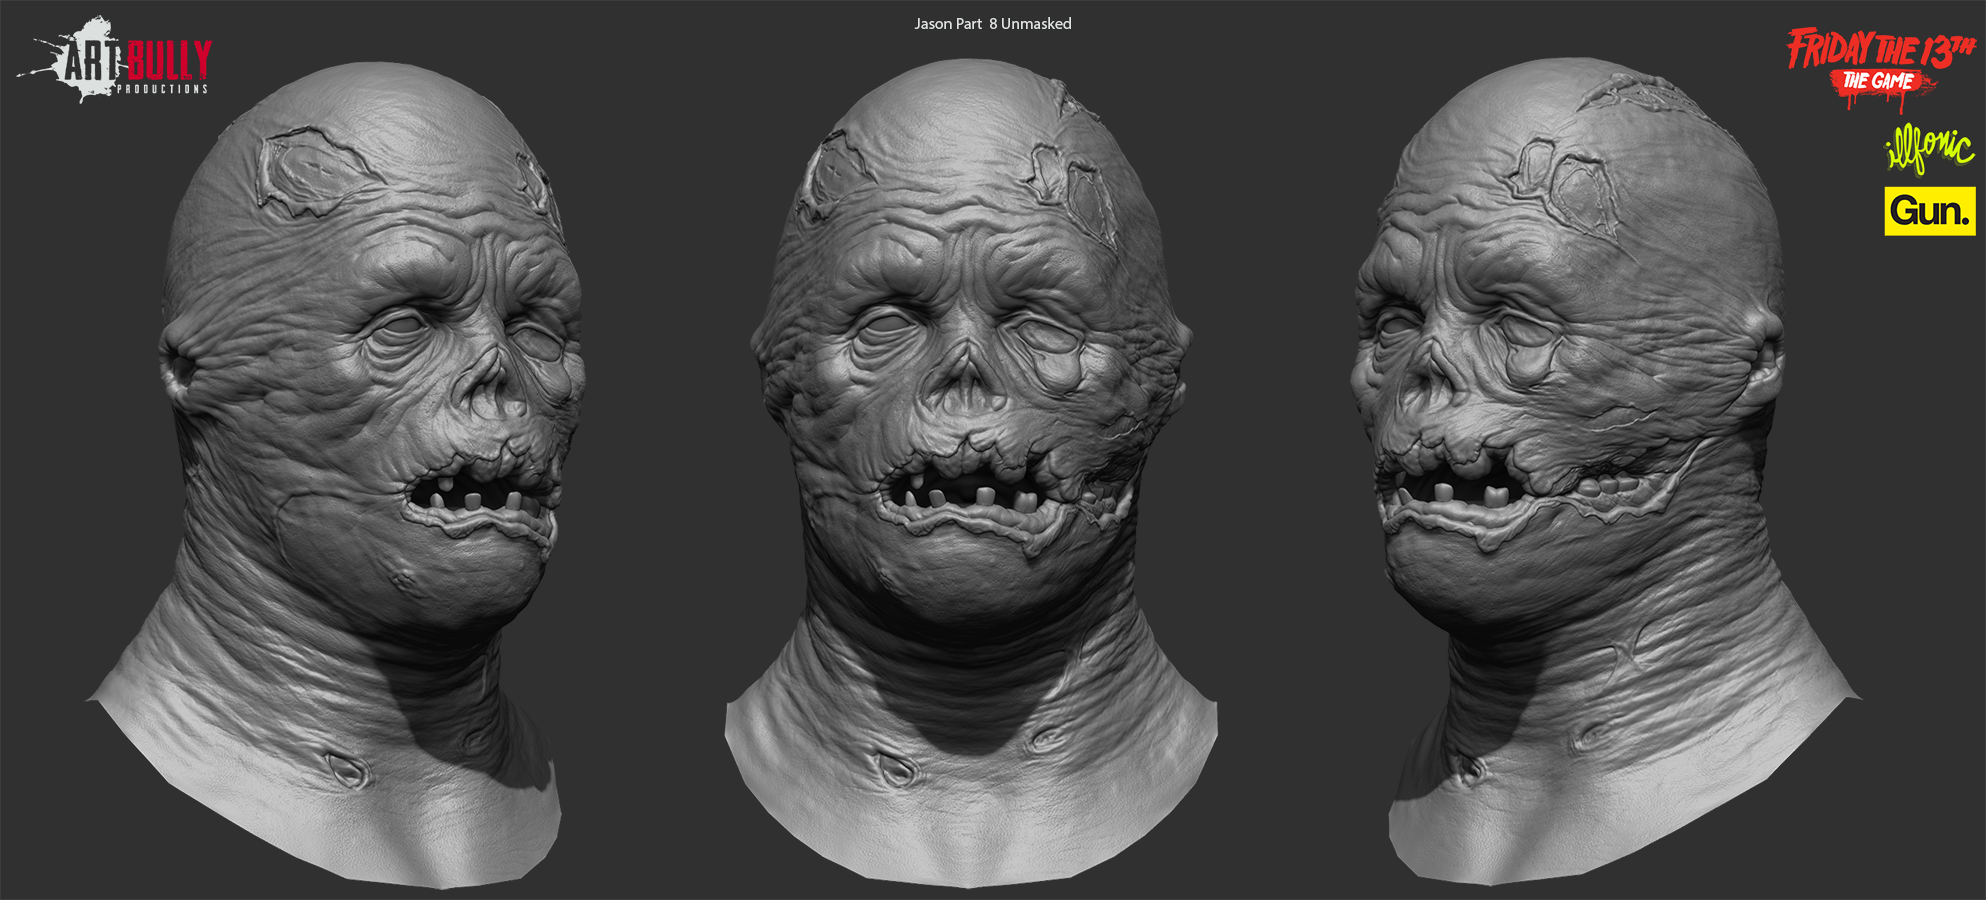 Jason_Part8_Highpoly_Unmasked_CU_01.png